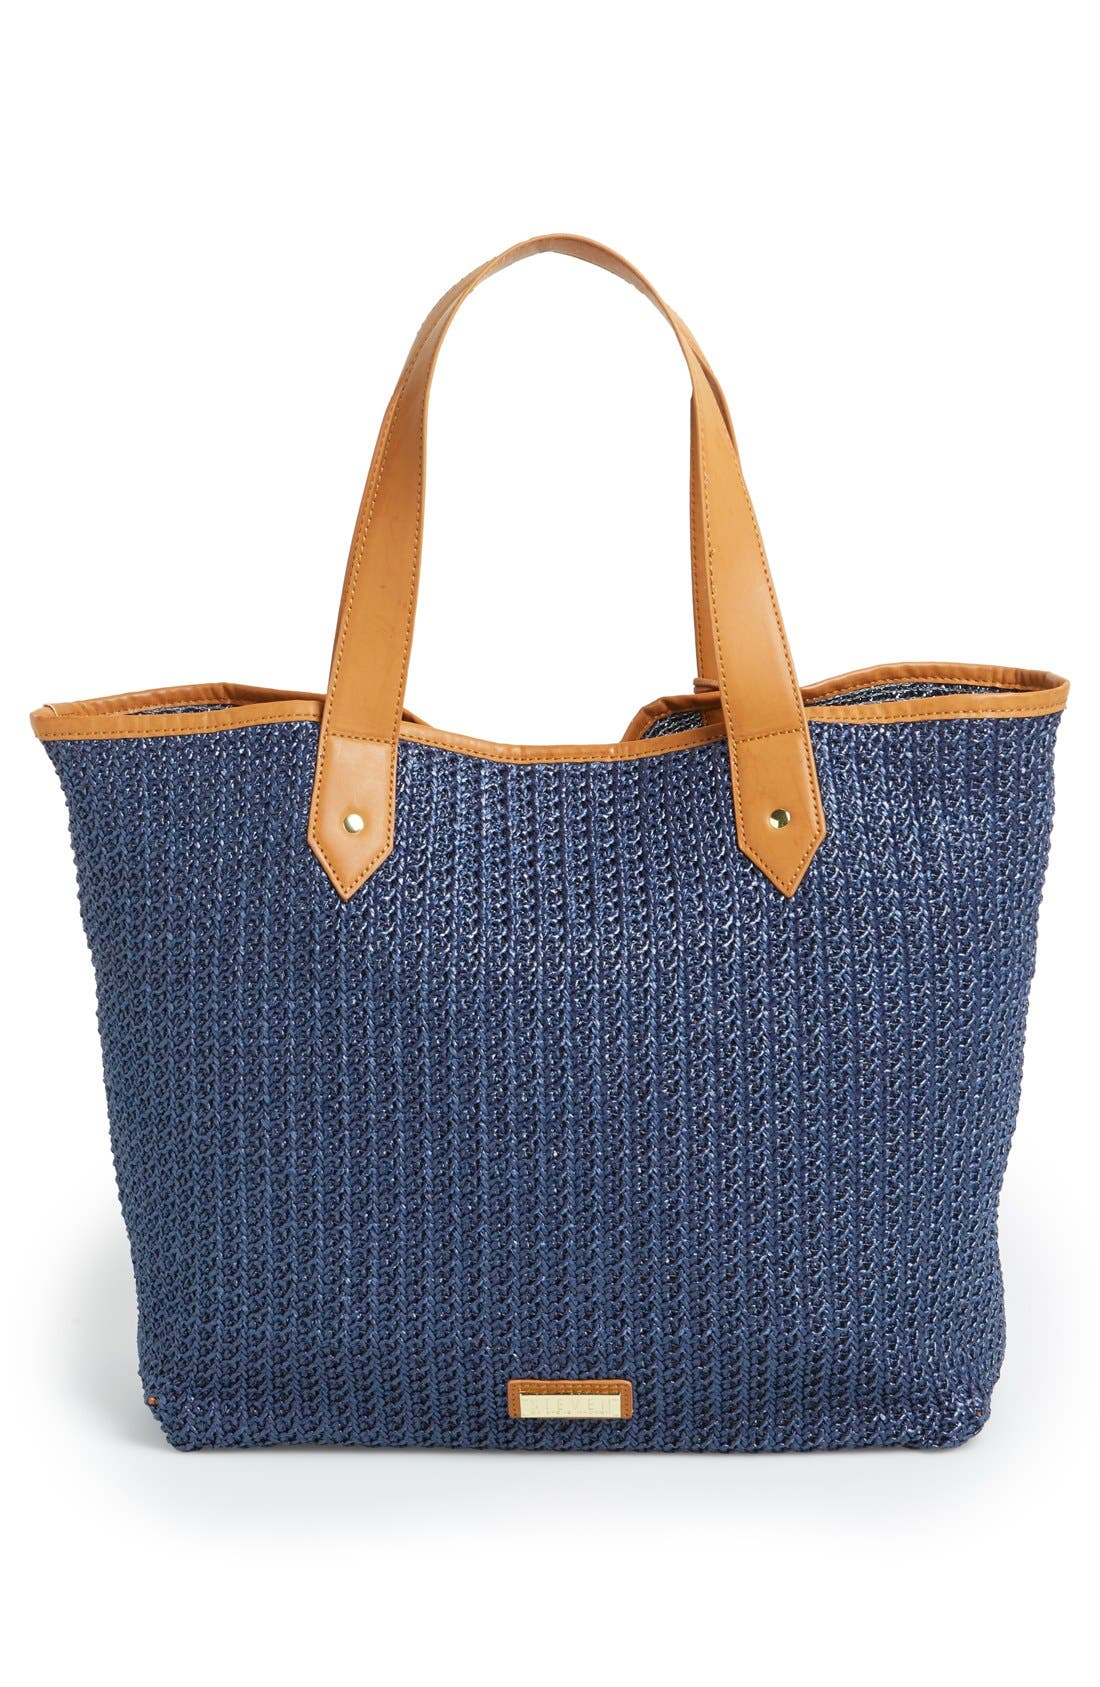 Alternate Image 4  - Steven by Steve Madden 'Bcabo' Straw Tote